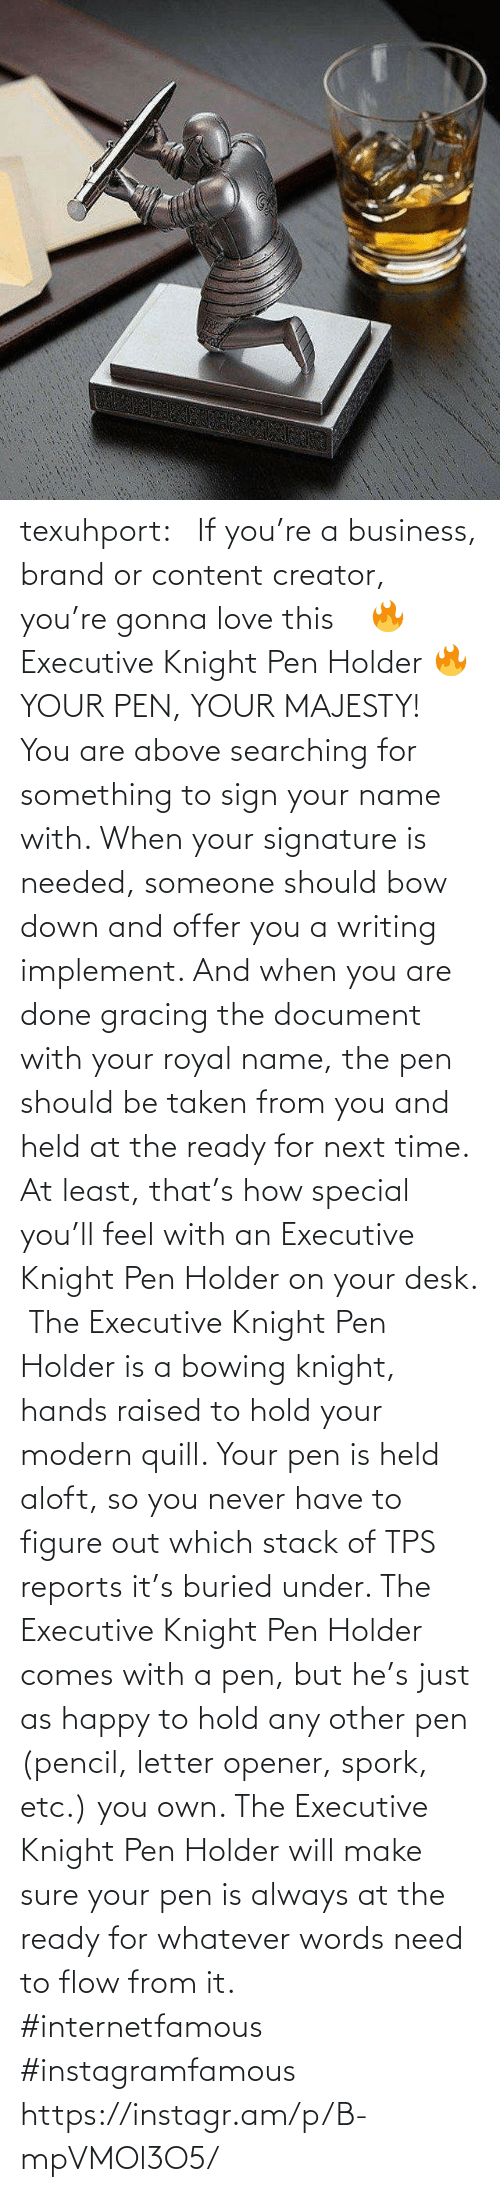 bow: texuhport:⎆ If you're a business, brand or content creator, you're gonna love this ⎆⁣ 🔥 Executive Knight Pen Holder 🔥⁣ YOUR PEN, YOUR MAJESTY!⁣ ⁣ You are above searching for something to sign your name with. When your signature is needed, someone should bow down and offer you a writing implement. And when you are done gracing the document with your royal name, the pen should be taken from you and held at the ready for next time. At least, that's how special you'll feel with an Executive Knight Pen Holder on your desk.⁣ ⁣ The Executive Knight Pen Holder is a bowing knight, hands raised to hold your modern quill. Your pen is held aloft, so you never have to figure out which stack of TPS reports it's buried under. The Executive Knight Pen Holder comes with a pen, but he's just as happy to hold any other pen (pencil, letter opener, spork, etc.) you own. The Executive Knight Pen Holder will make sure your pen is always at the ready for whatever words need to flow from it.⁣ #internetfamous  #instagramfamous https://instagr.am/p/B-mpVMOl3O5/